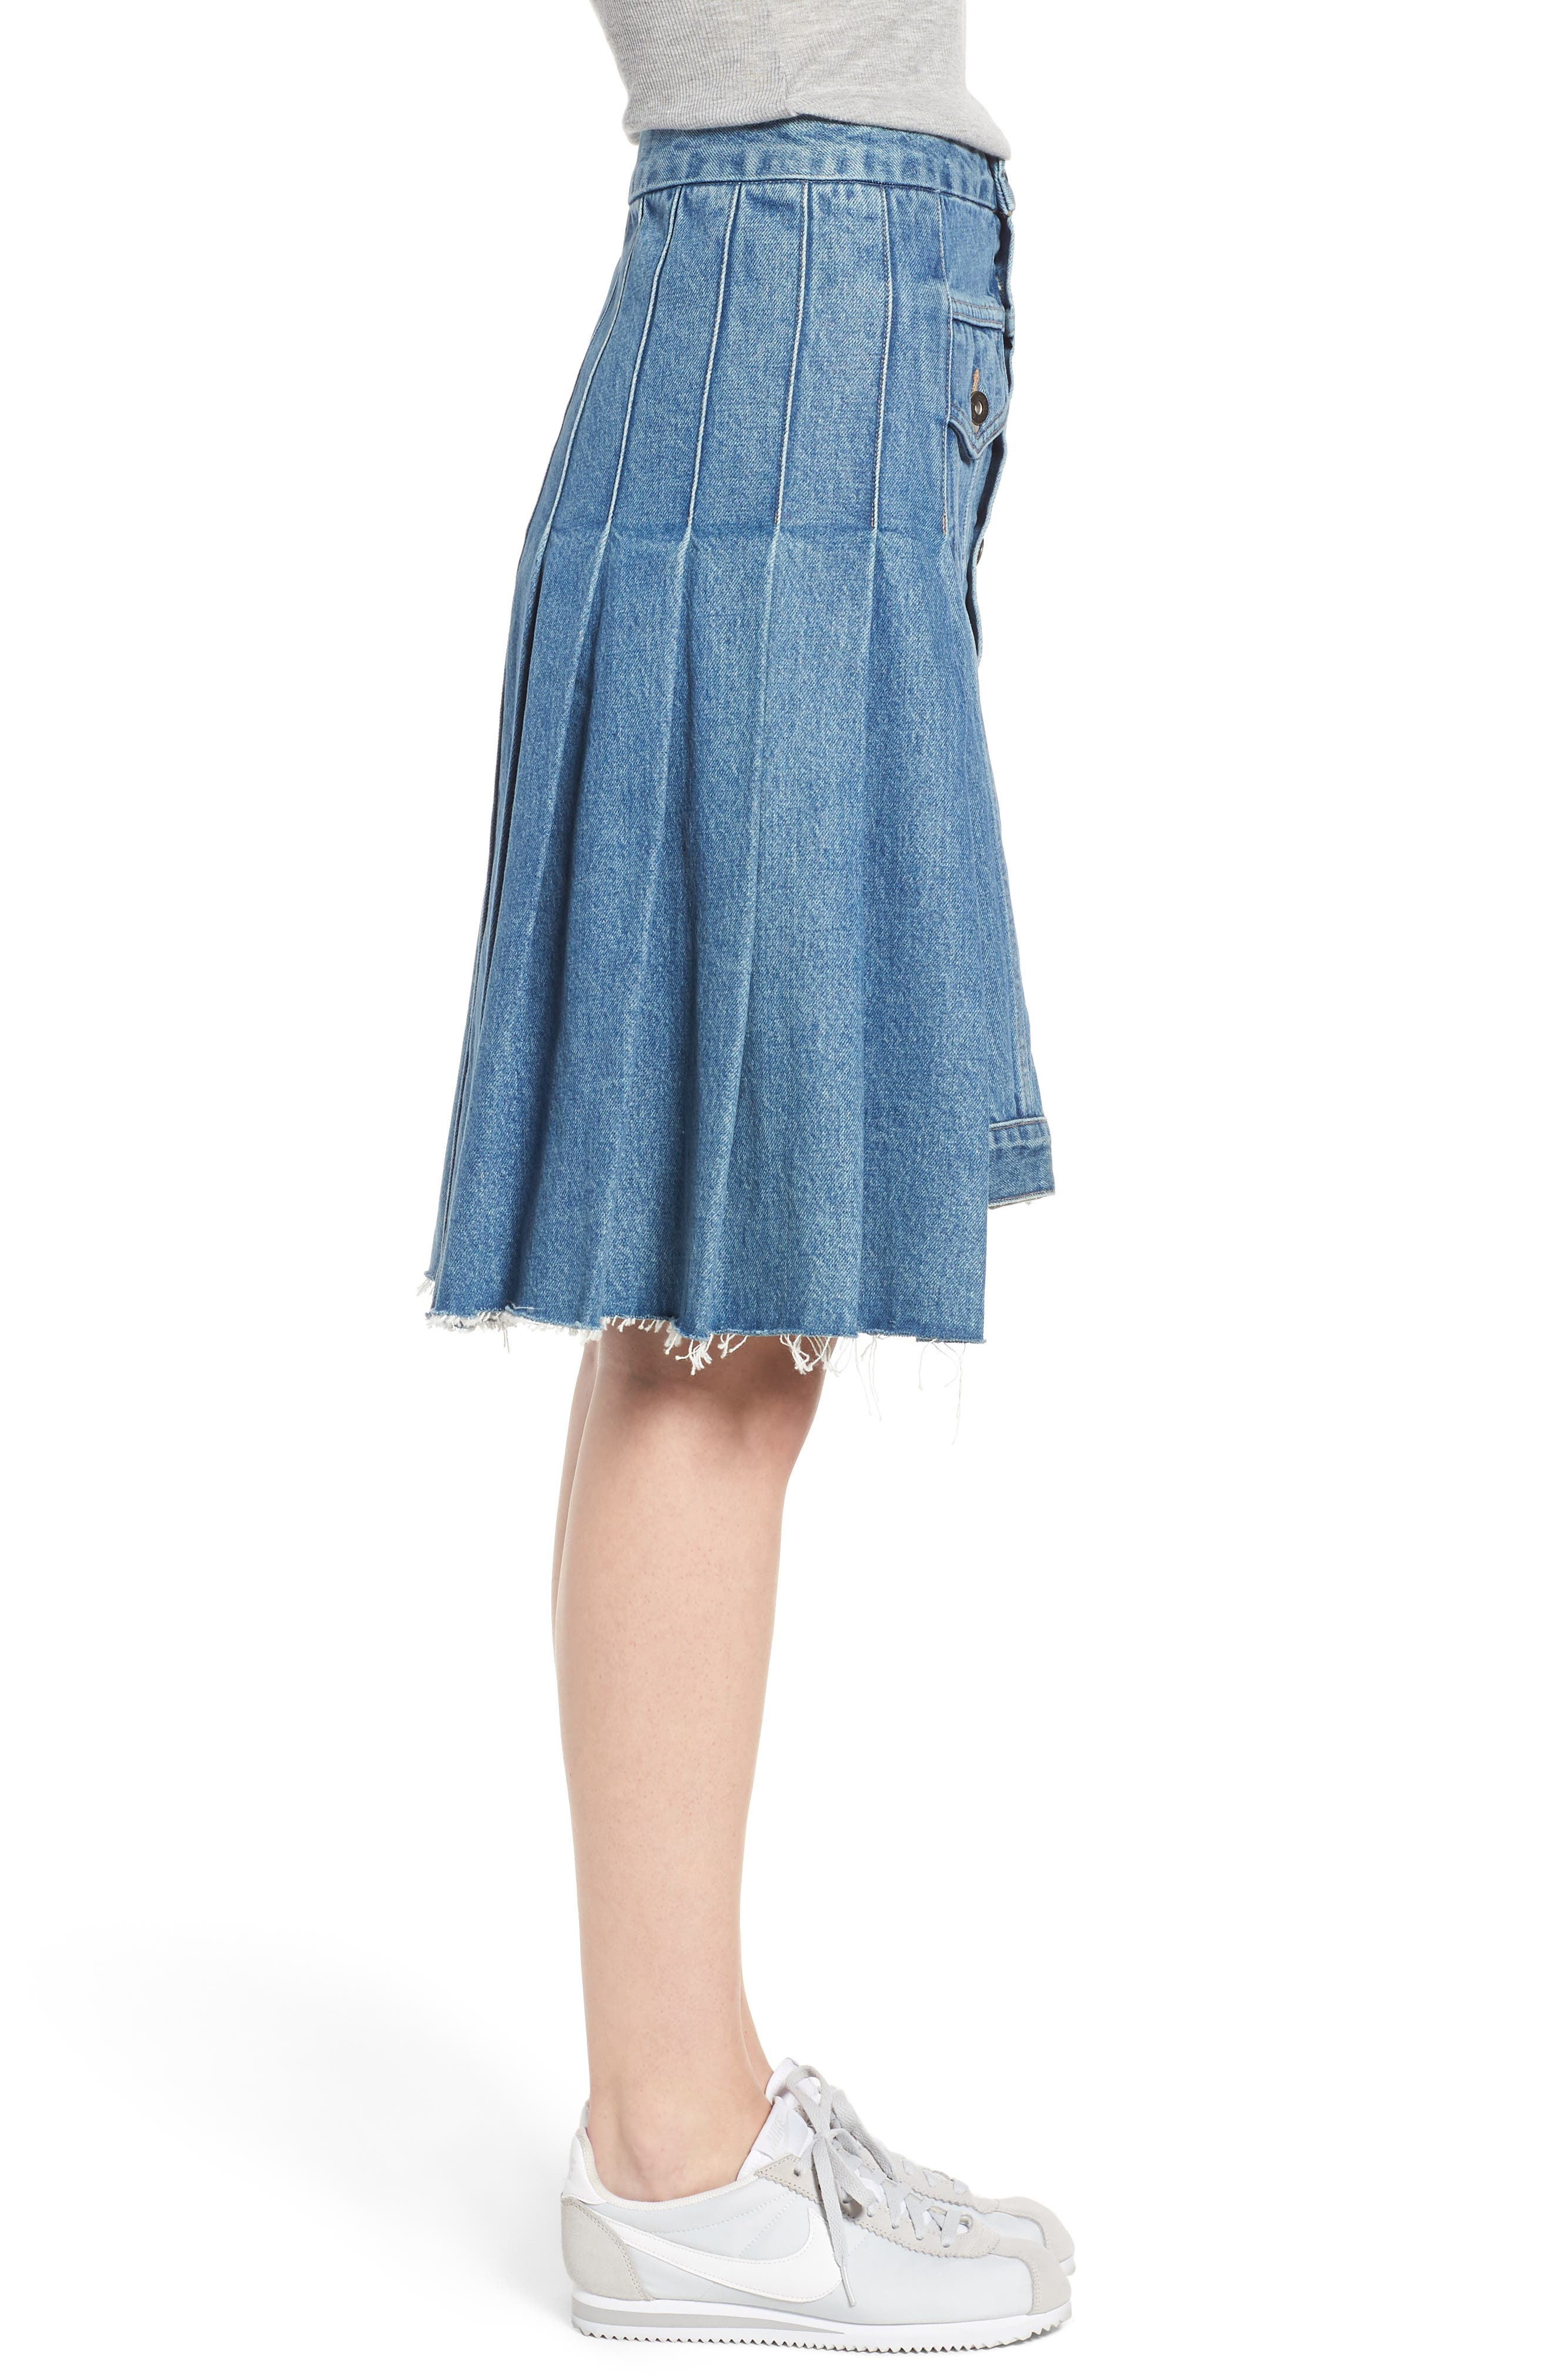 LEVI'S<SUP>®</SUP> MADE & CRAFTED<SUP>™</SUP>,                             Type III Pleated Denim Skirt,                             Alternate thumbnail 4, color,                             400